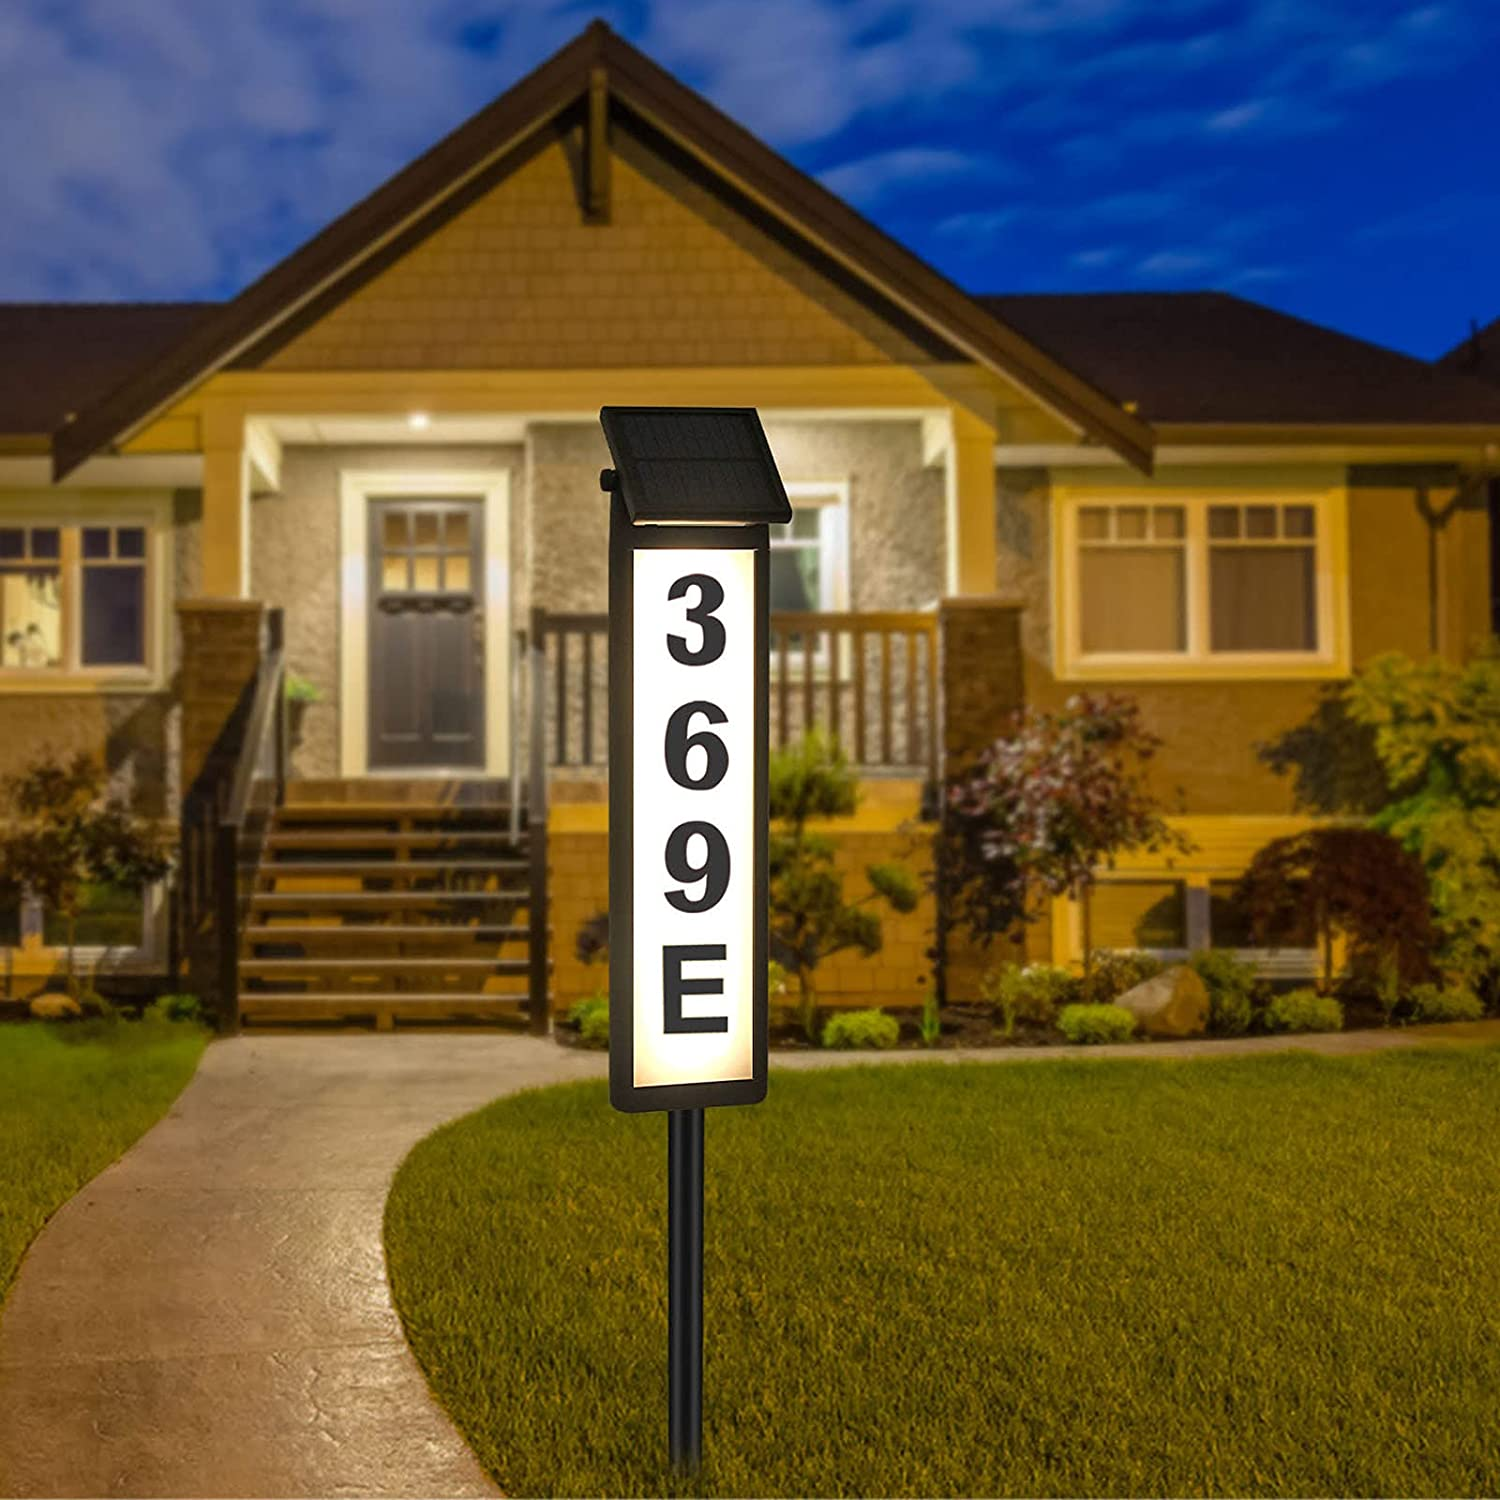 Melunar Solar House Address Numbers Sign, Waterproof Lighted Up Address Plaques with Stake, Solar Powered House Numbers Lights for Outside, Home, Yard, Street, House (Warm White/Cool White)